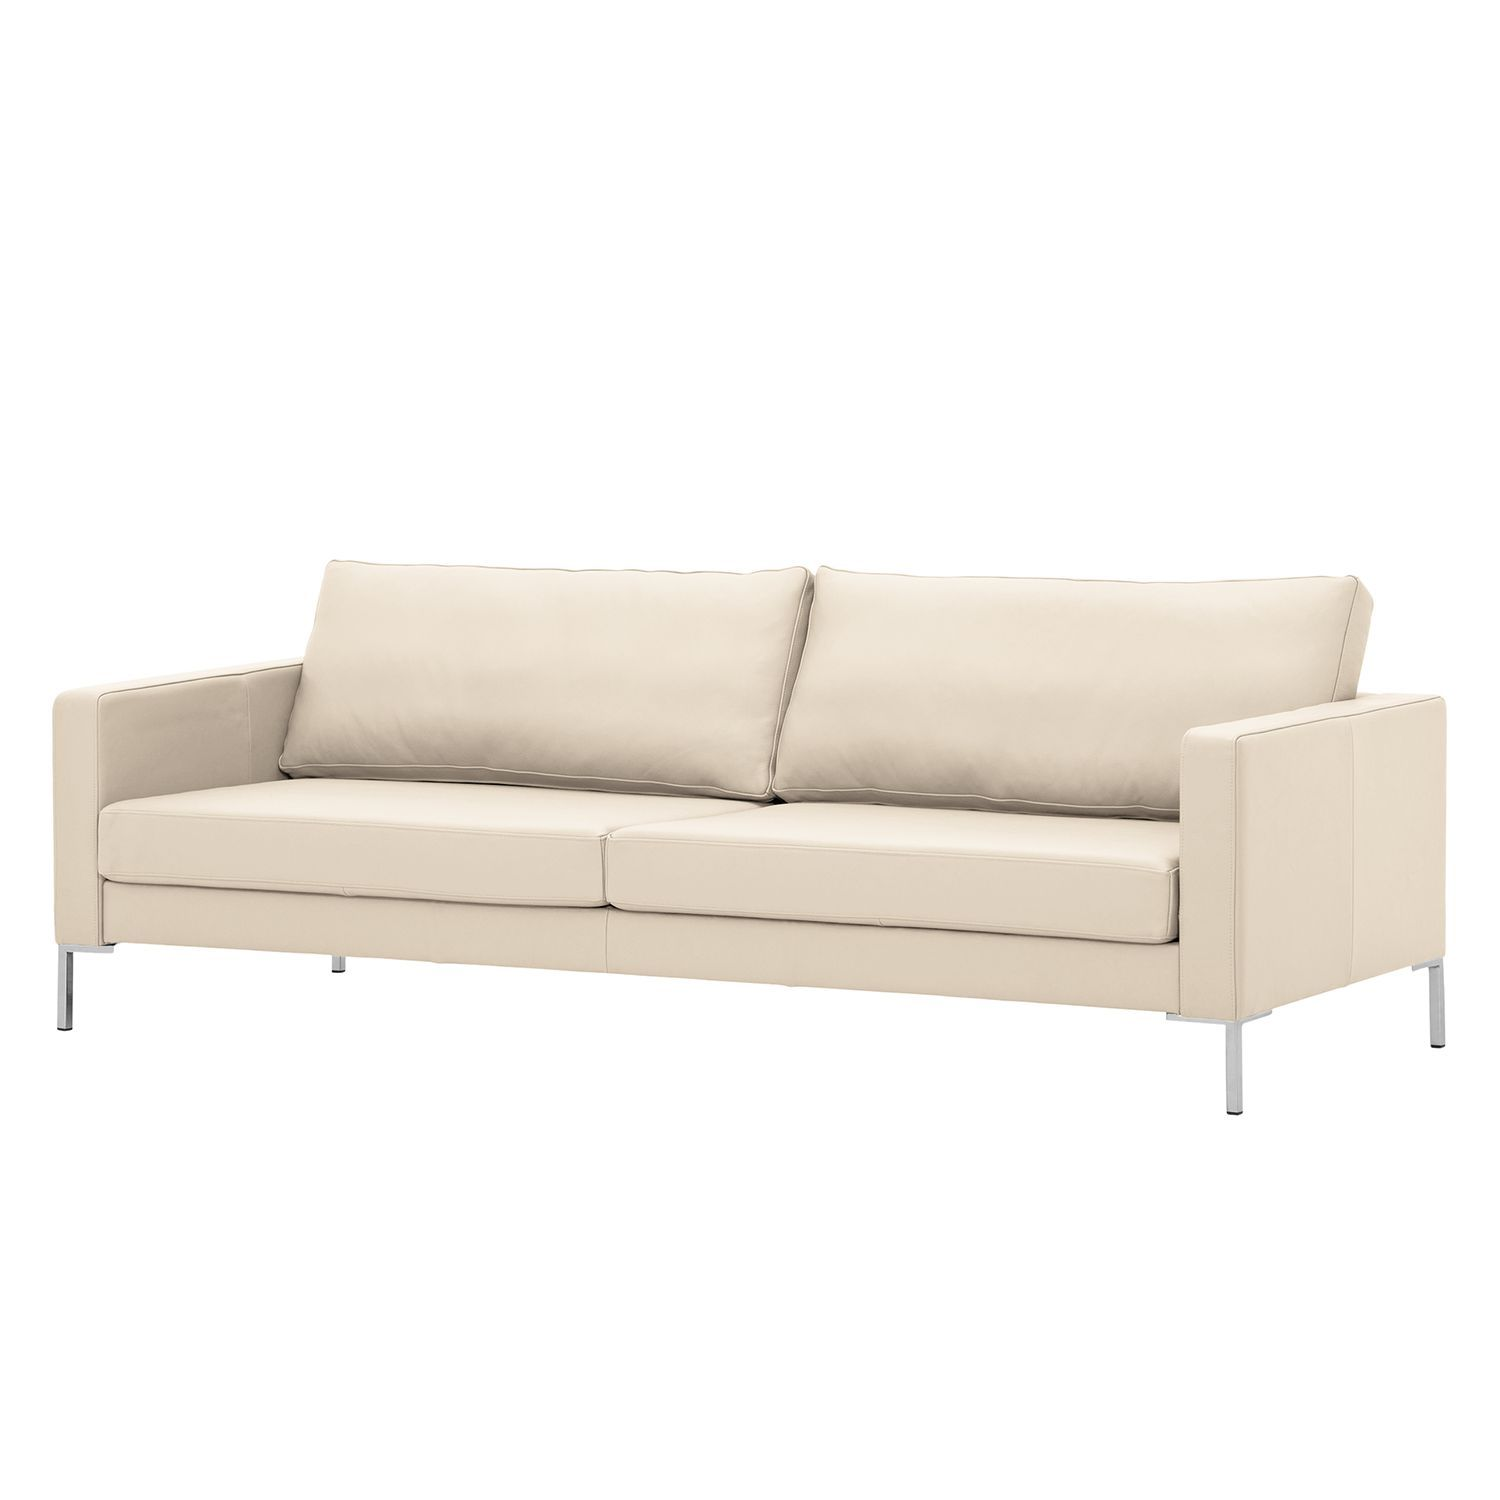 Sofa Portobello 3 Sitzer Echtleder Products Sofa Furniture Sofa Und Outdoor Sofa